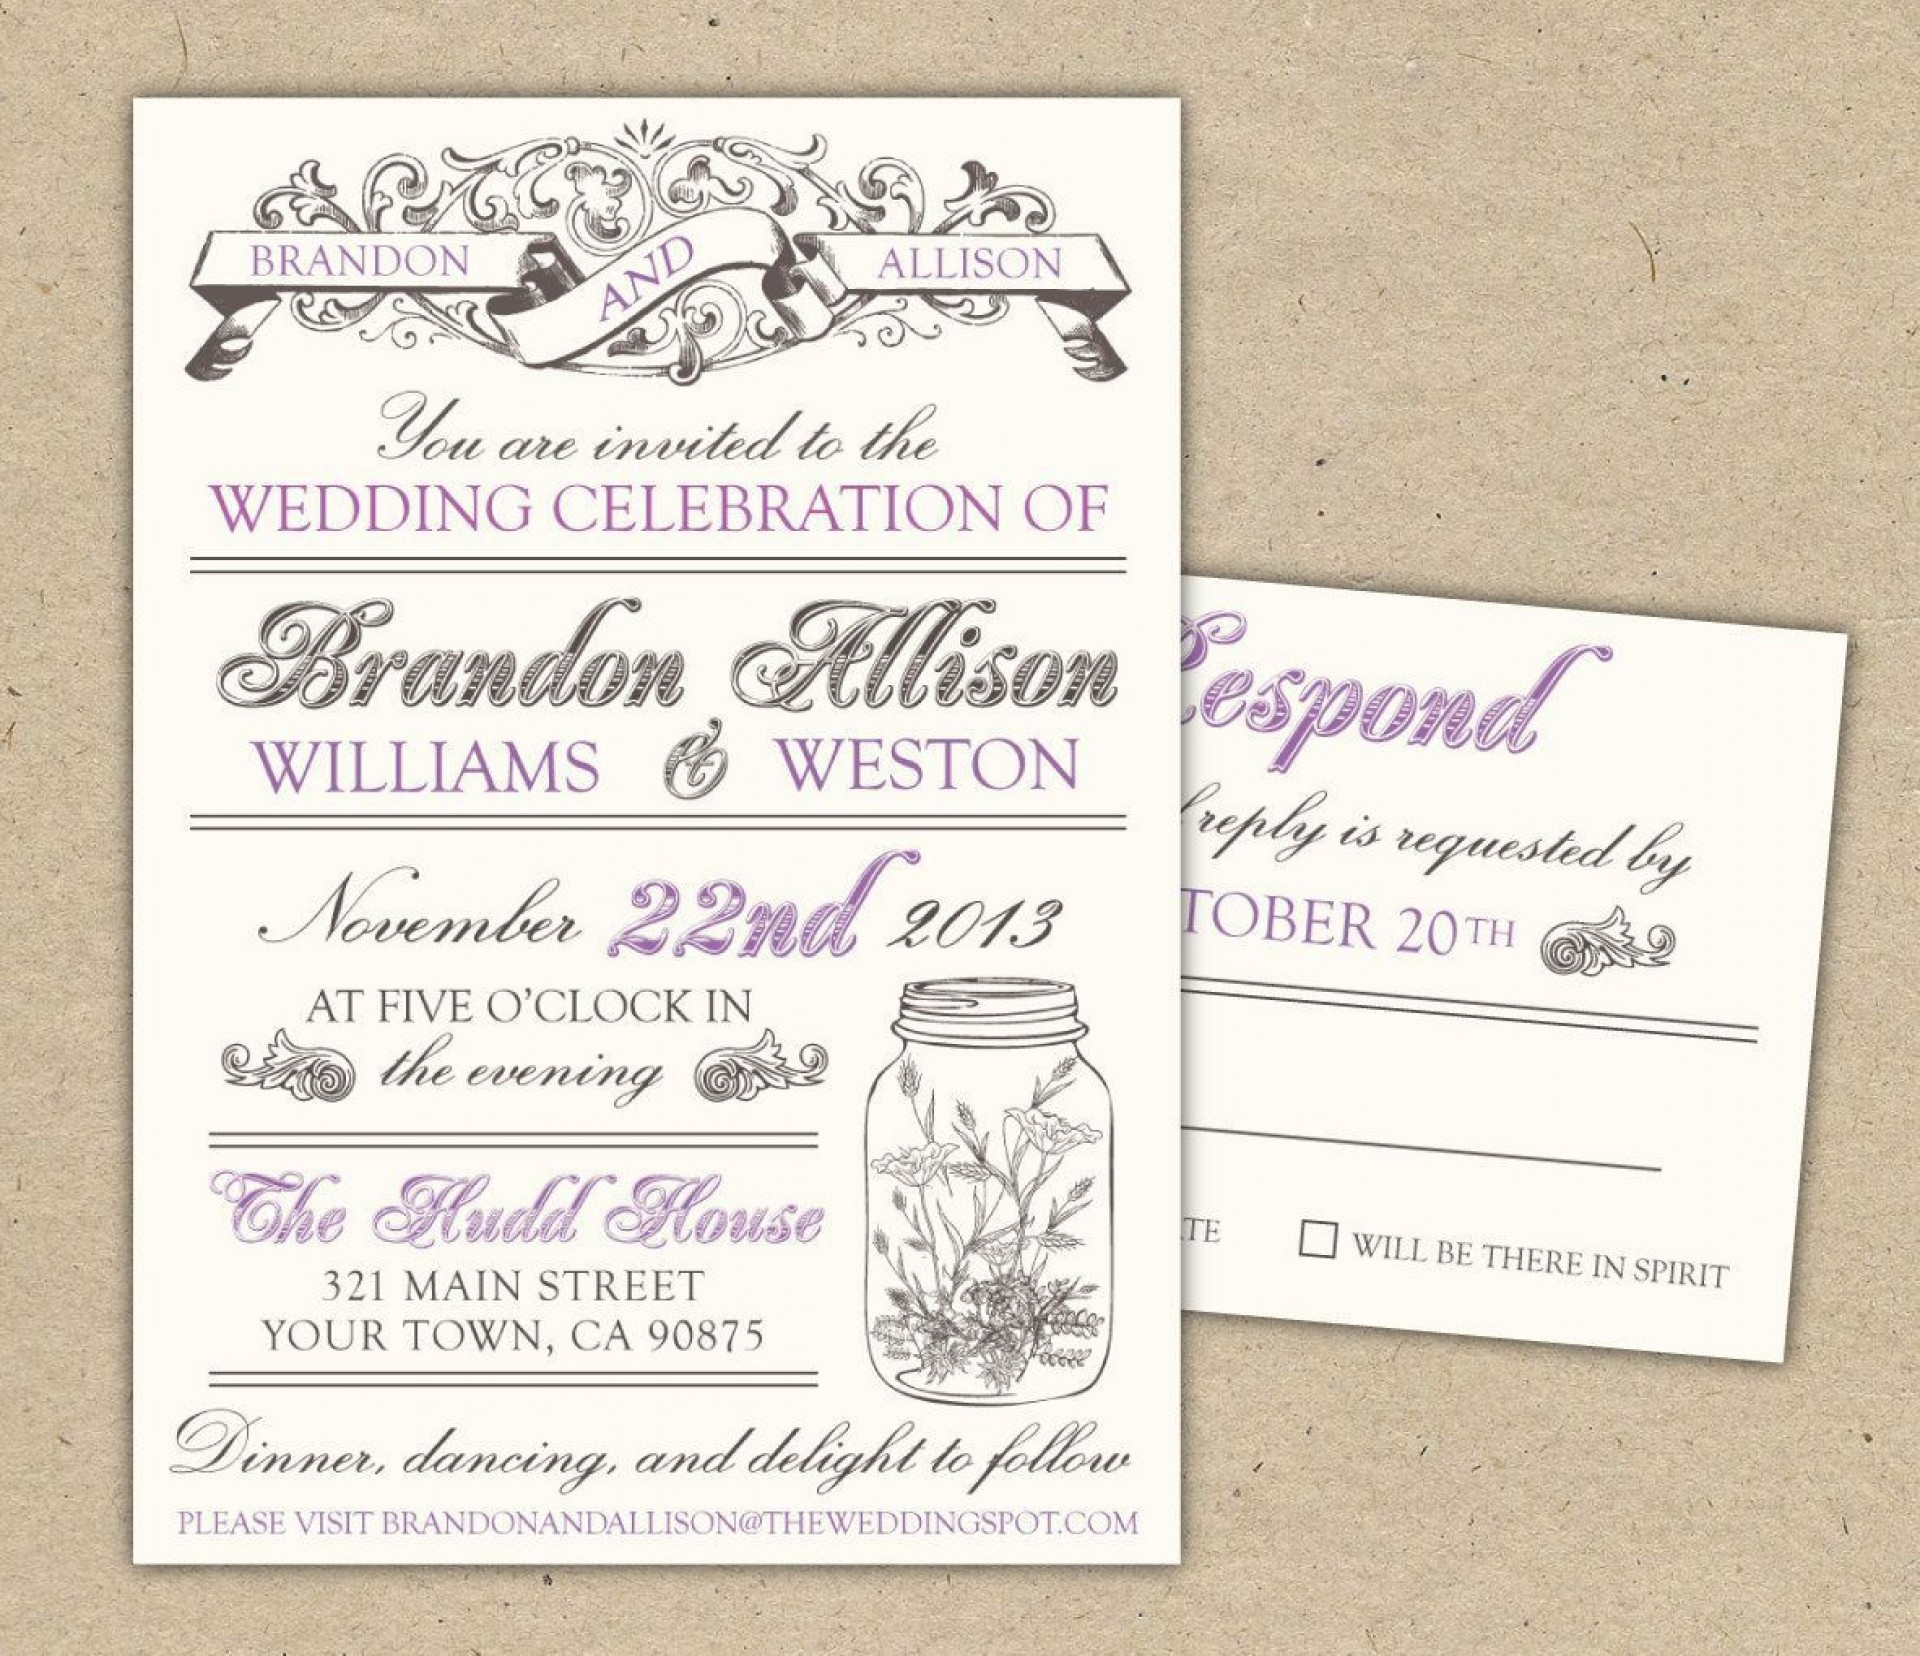 003 Stunning Free Wedding Invitation Template Design  Printable Download Wording Uk Format1920